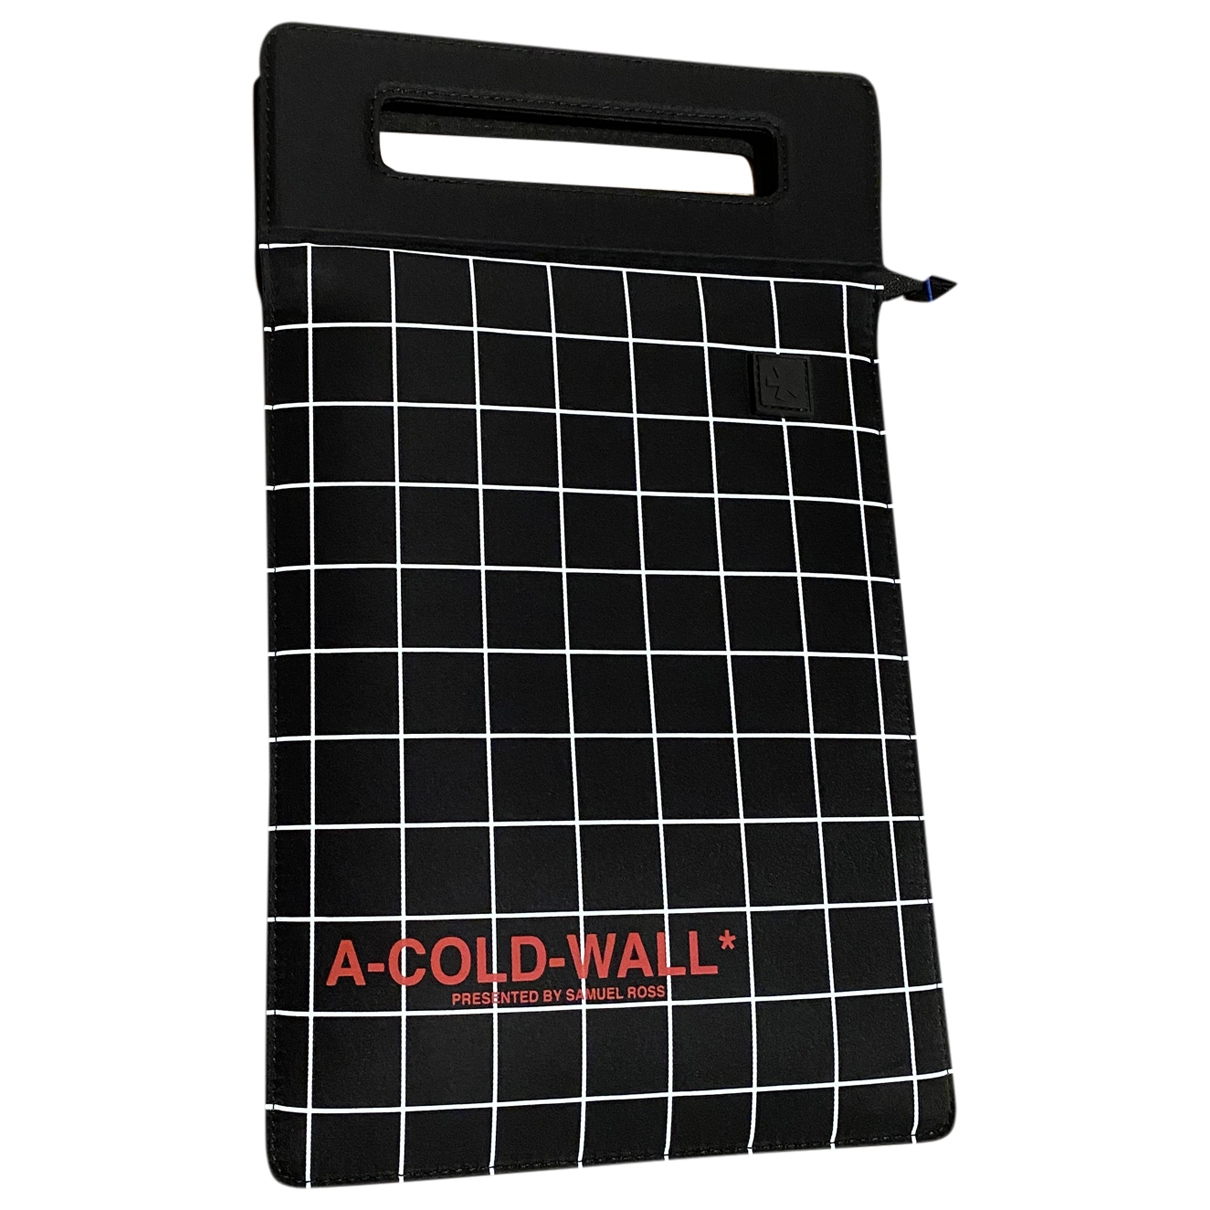 A-cold-wall \N Black Small bag, wallet & cases for Men \N